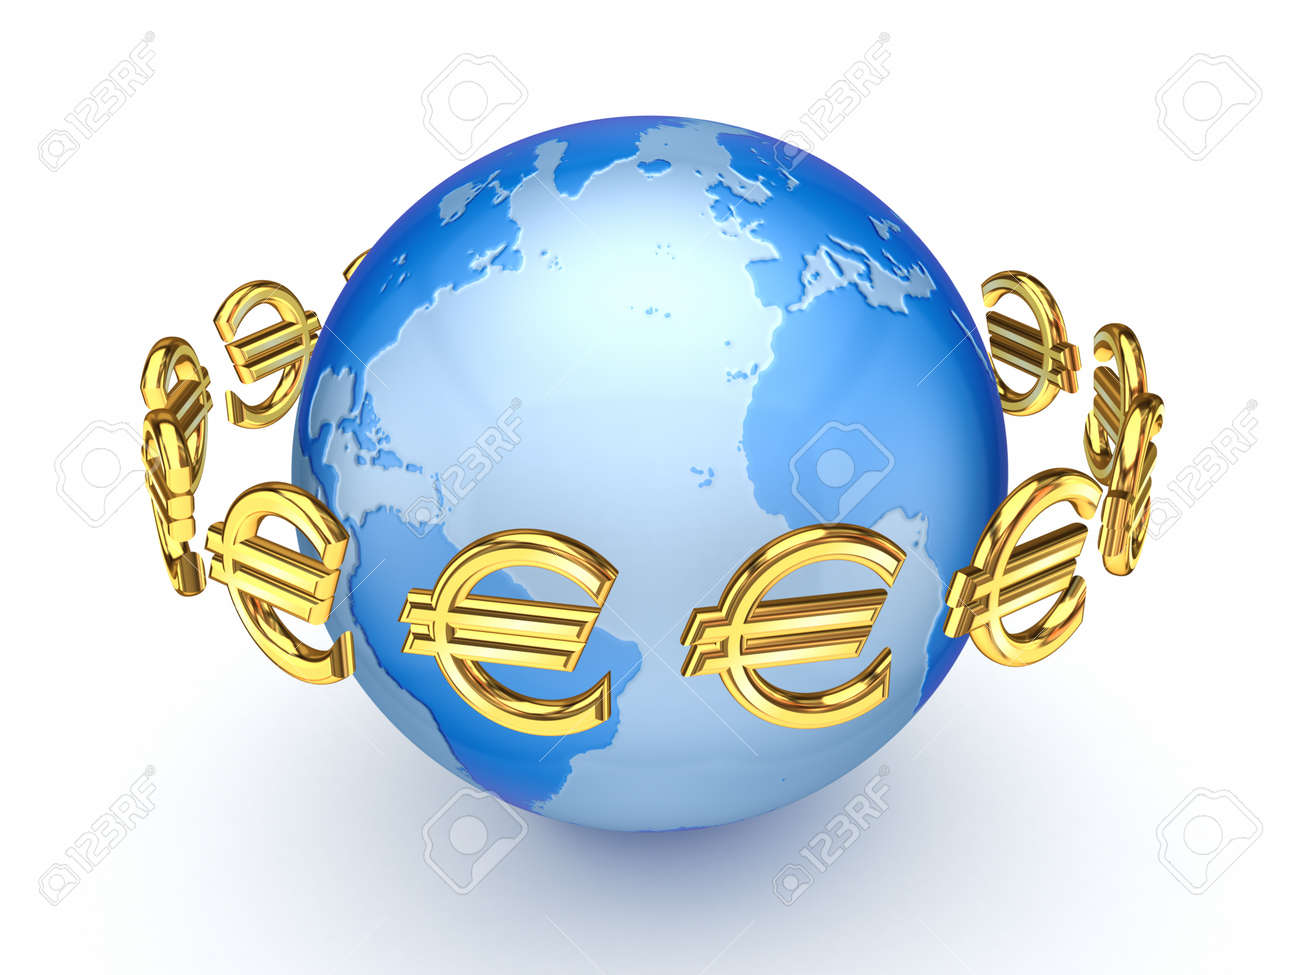 Euro signs around globe Stock Photo - 15535663